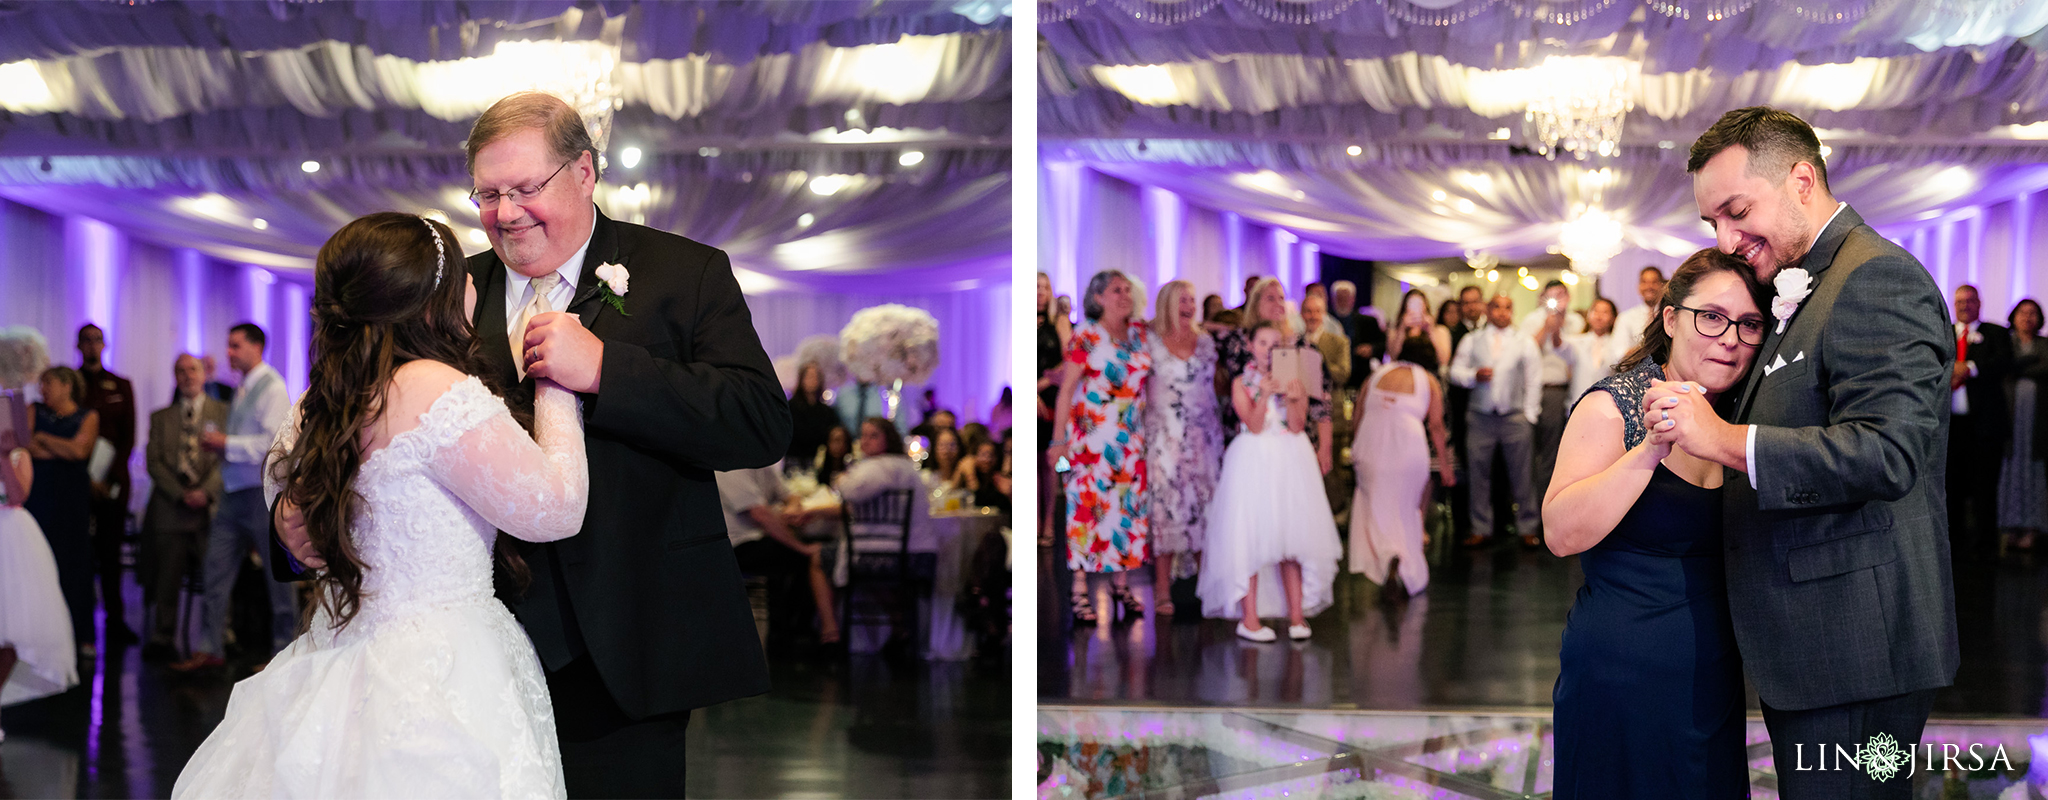 32 White House Banquets and Events Center Anaheim Wedding Photography